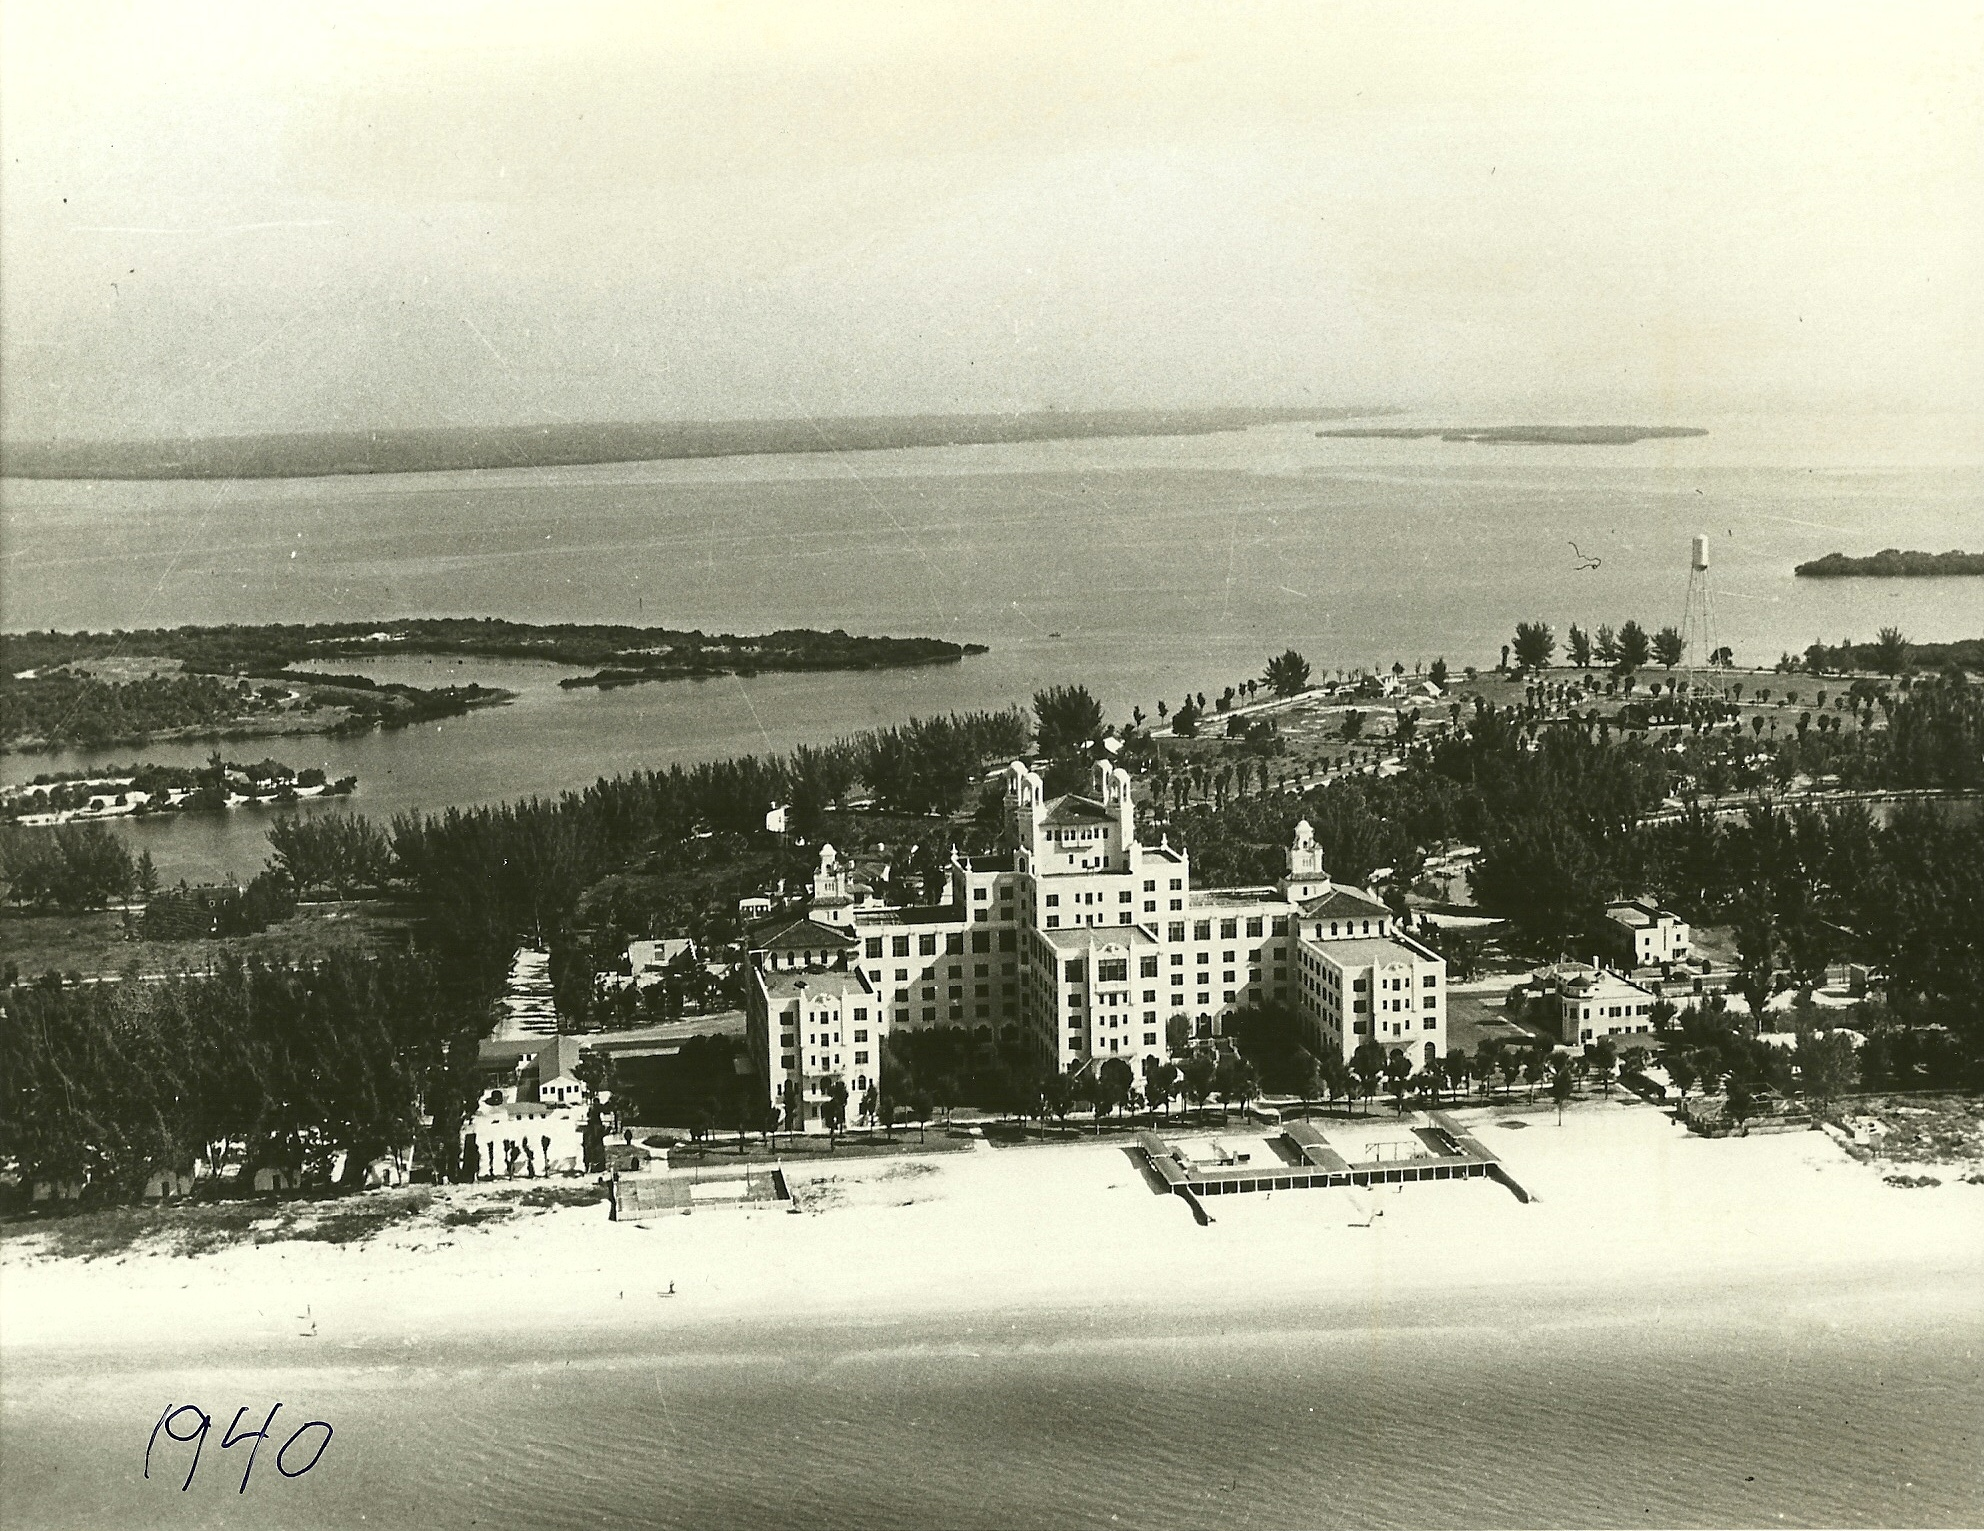 The Don Cesar Hotel in St. Petersburg in 1940